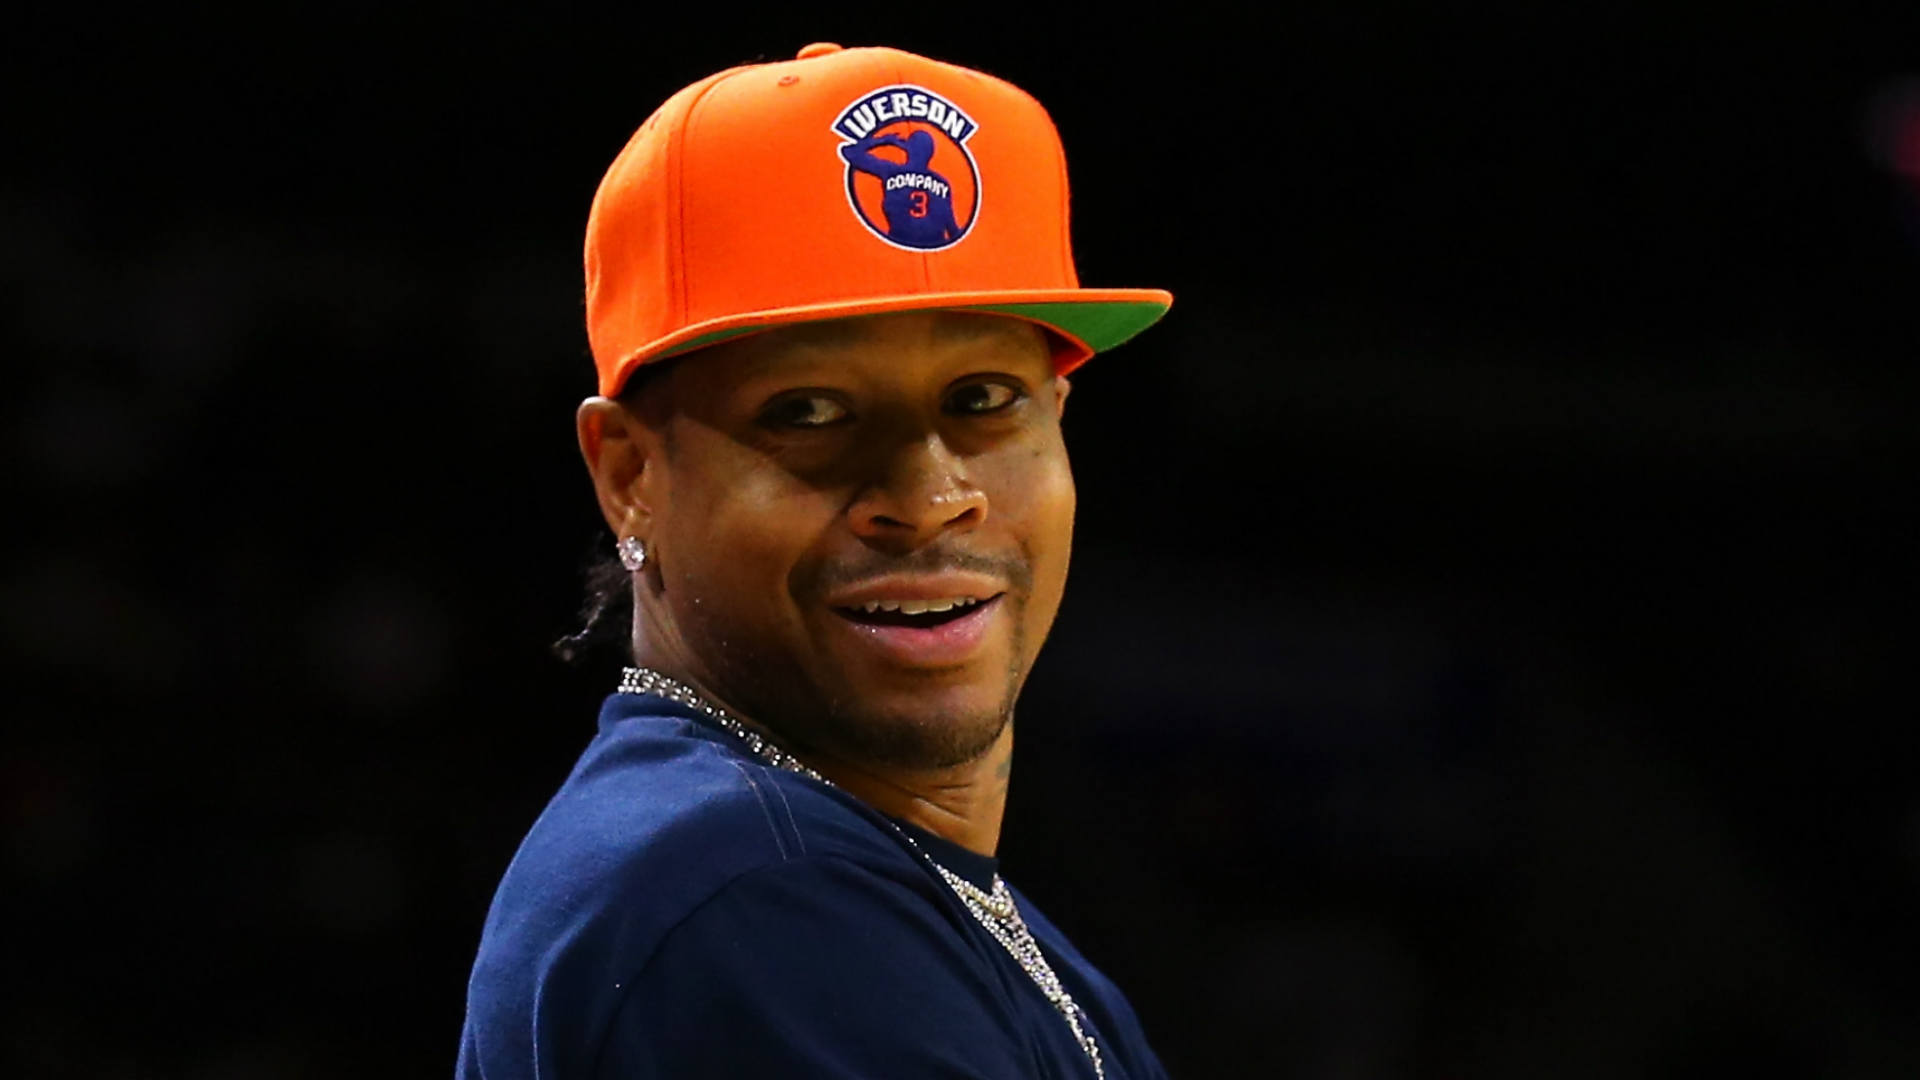 Allen Iverson returns to Philadelphia for Big 3 game, but doesn't play